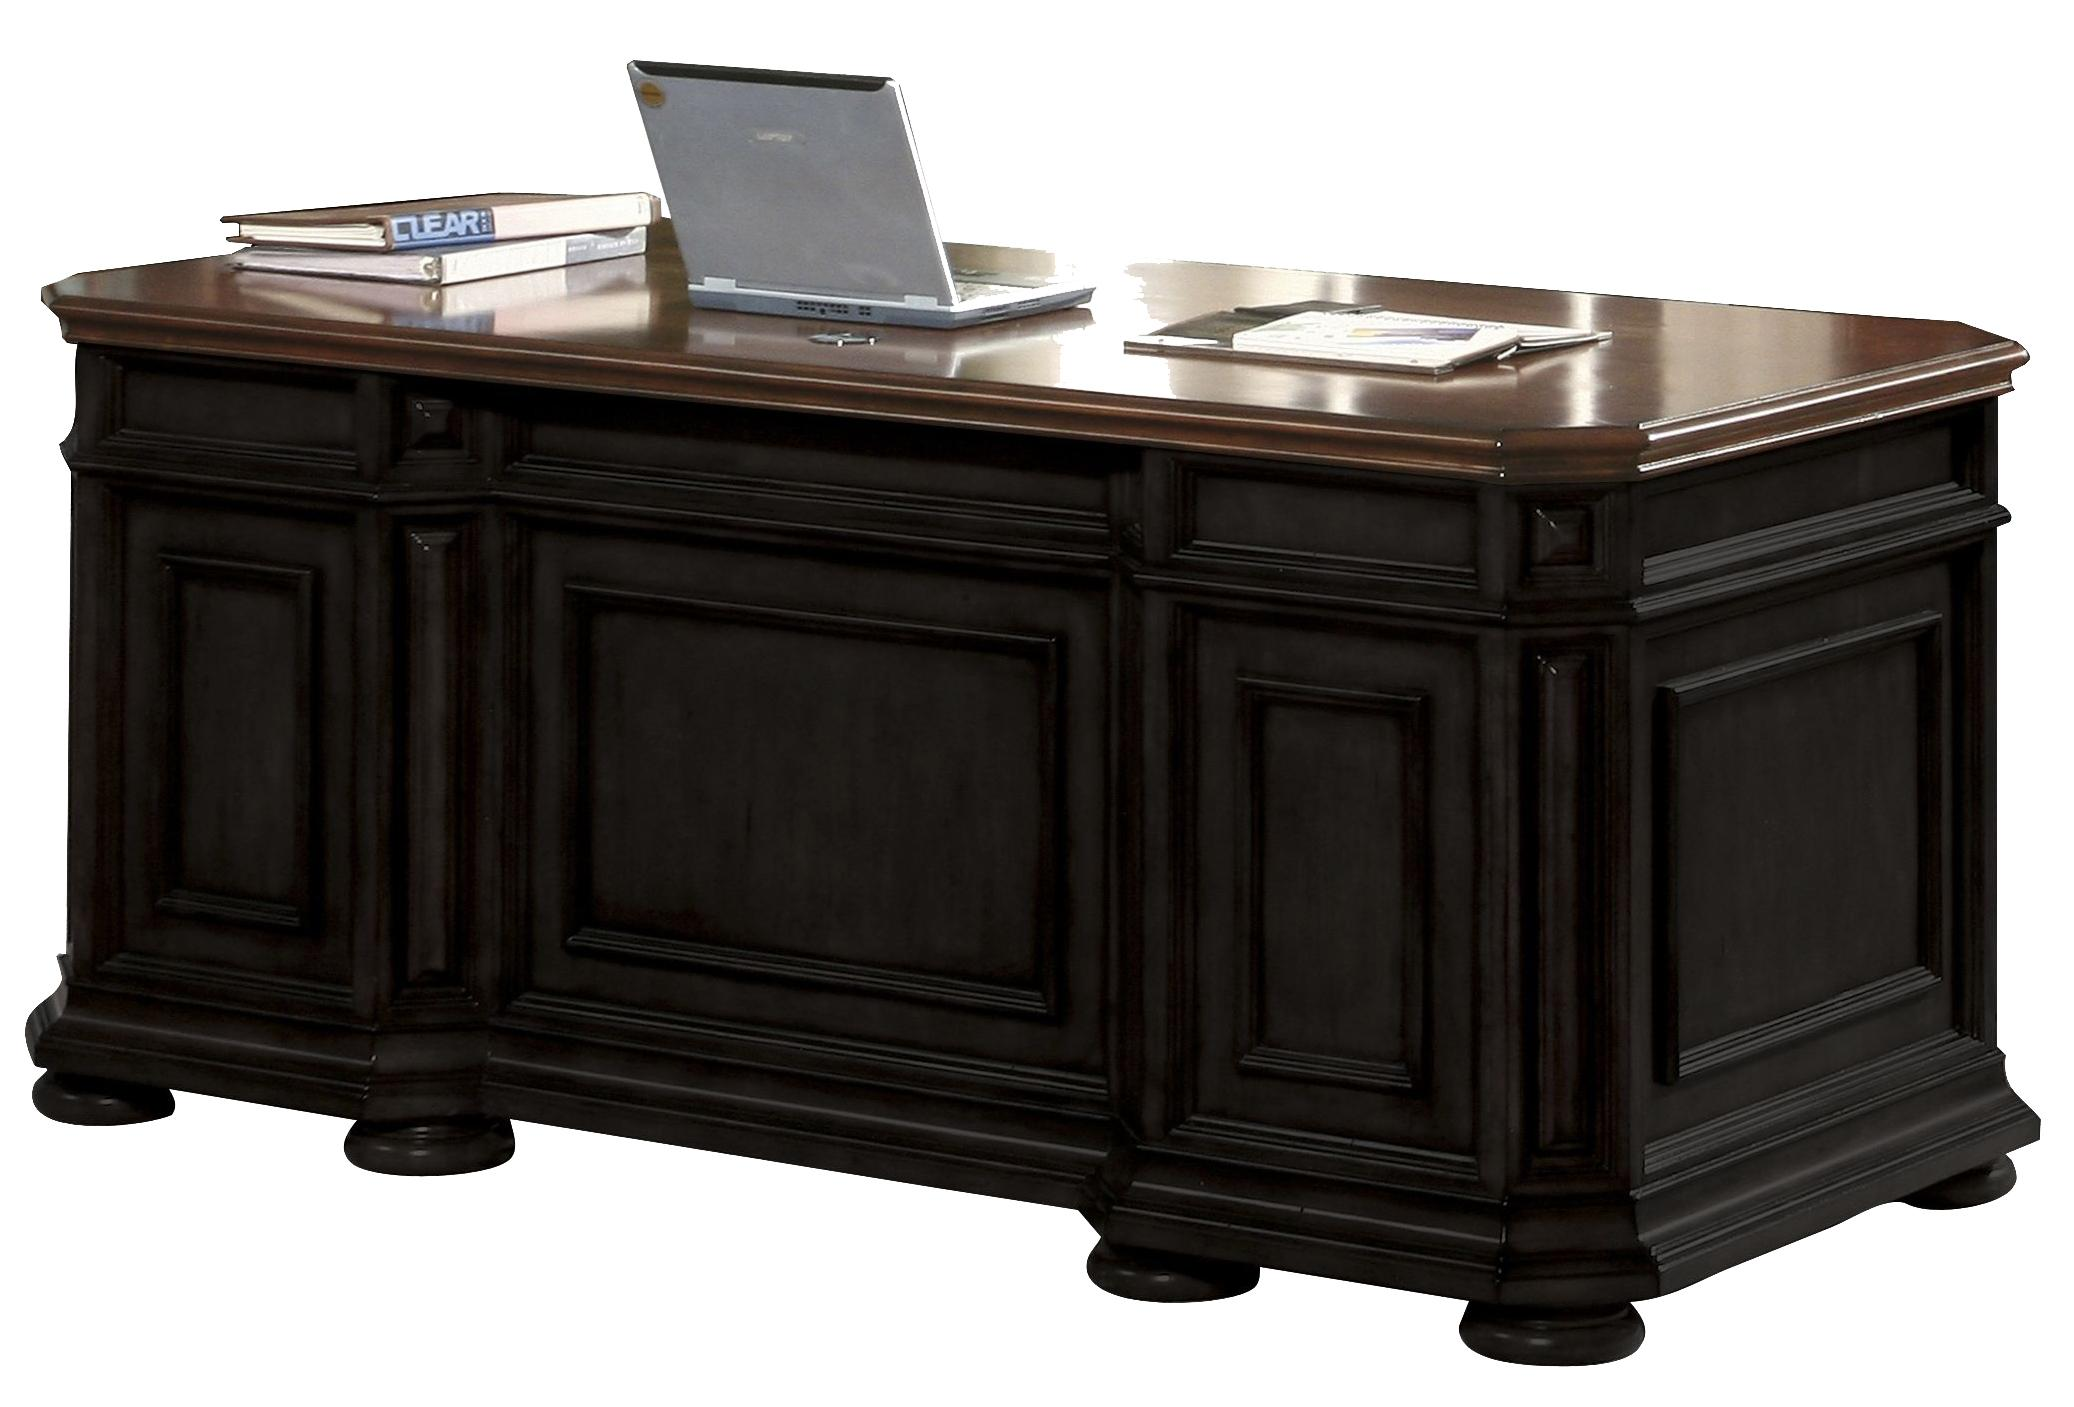 Riverside Furniture Allegro RS Executive Desk - Item Number: 44732